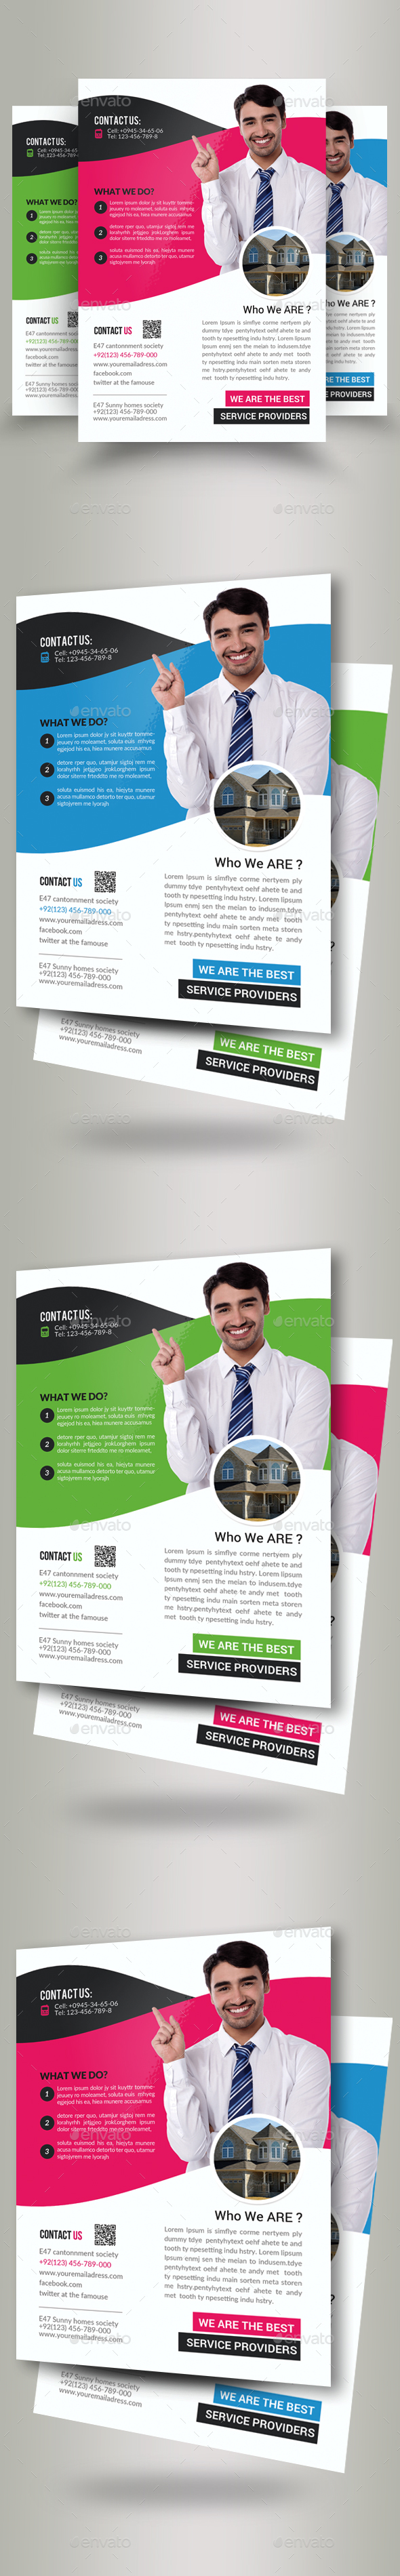 Real Estate Agent Flyers - Corporate Flyers